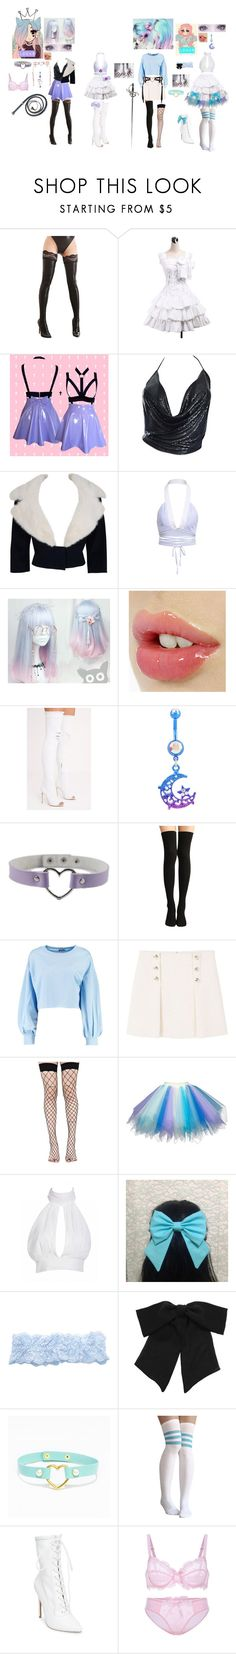 """""""Panty and Stocking with garterbelts oc: Bra and Garter"""" by ghostastickitty ❤ liked on Polyvore featuring Paco Rabanne, Jean Patou, LULUS, Hot Topic, Boohoo, MANGO, Leg Avenue, Fogal, Yves Saint Laurent and Steve Madden"""